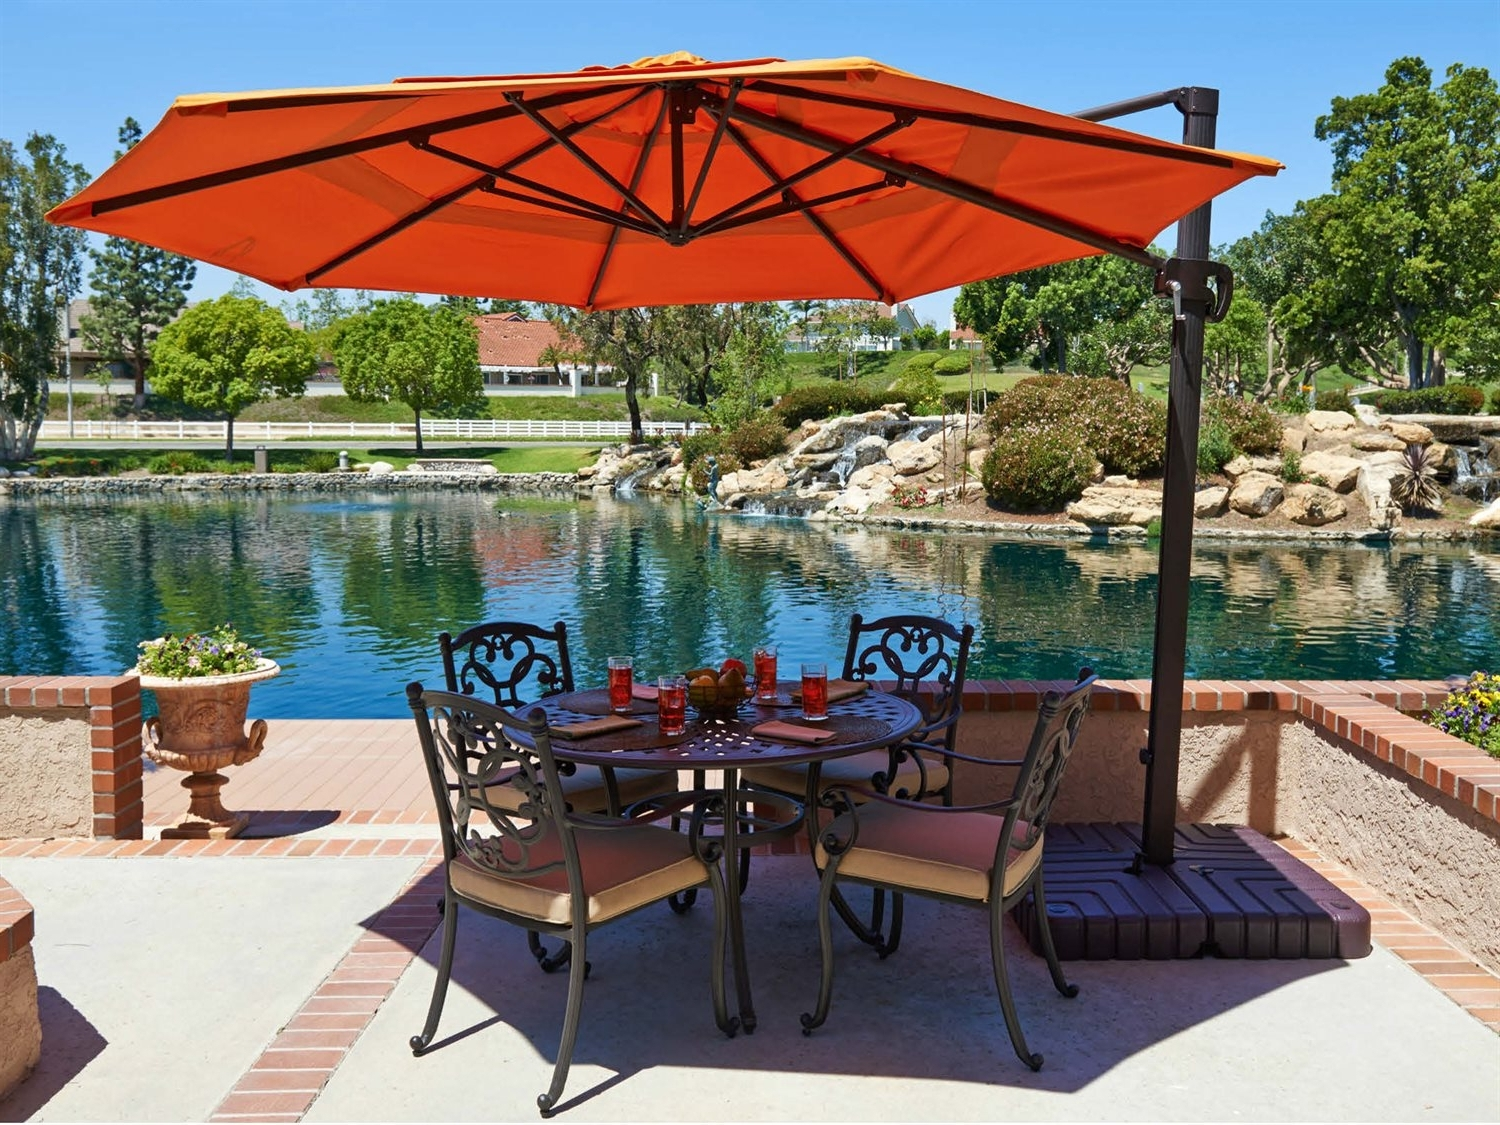 Popular 11 Foot Rectangular Patio Umbrella • Patio Ideas With 11 Foot Patio Umbrellas (View 17 of 20)